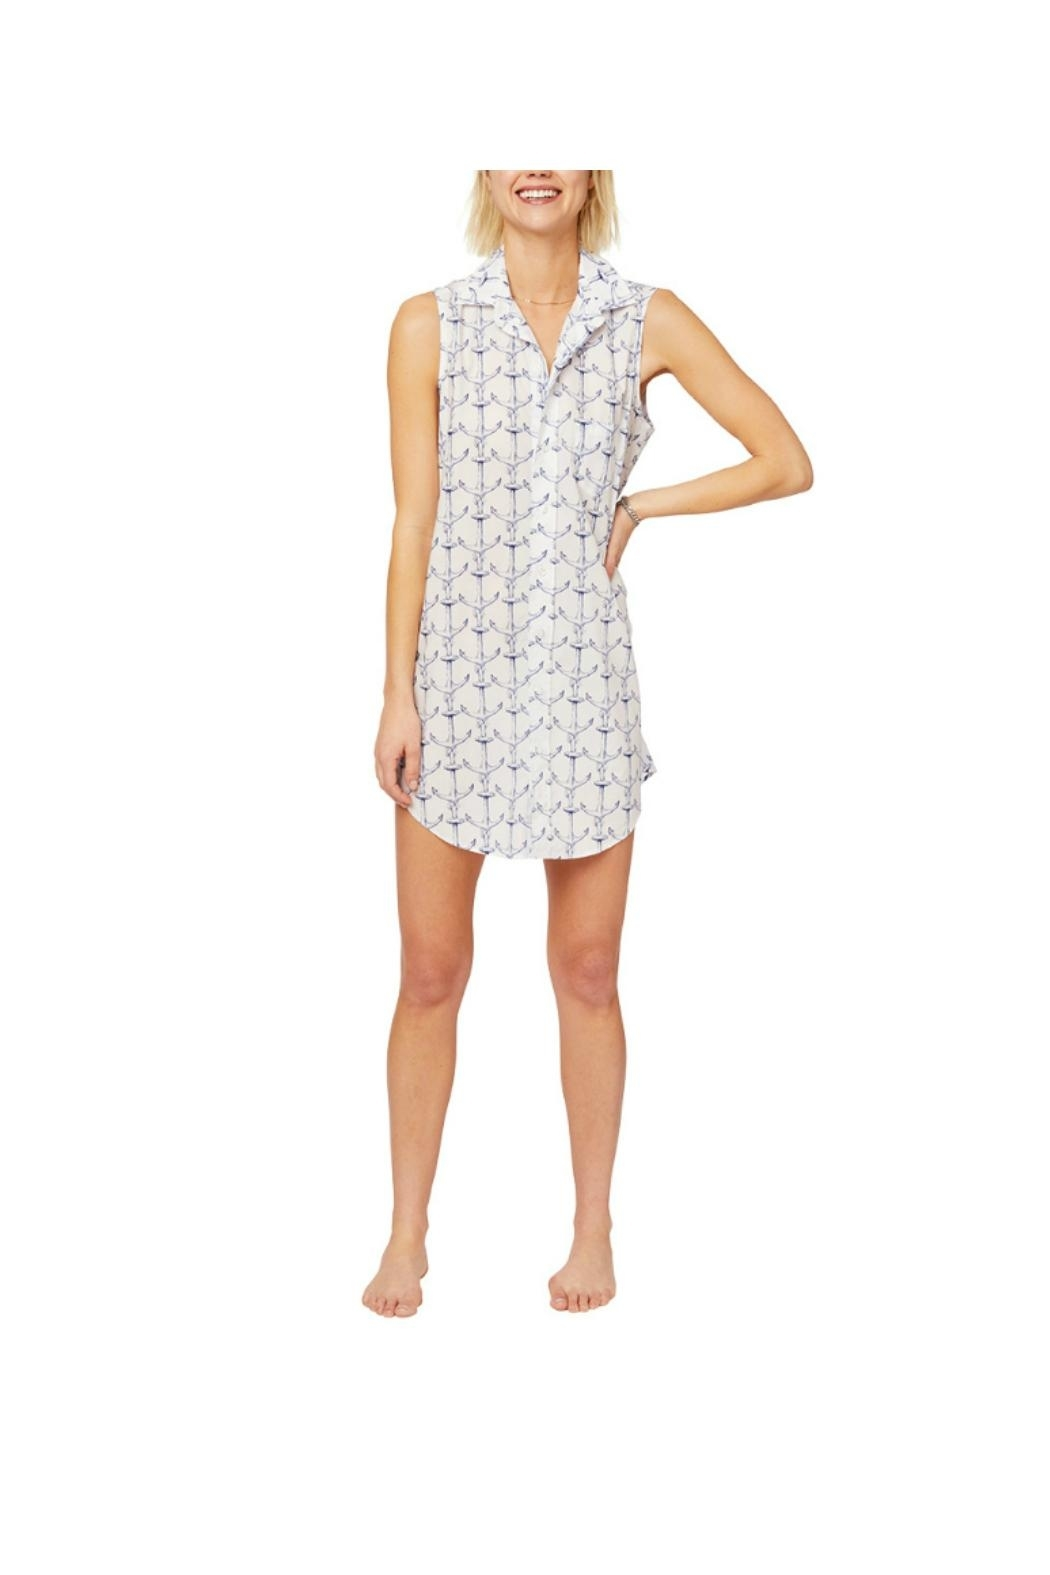 THE CATS PAJAMAS Anchor Sleeveless Nightshirt - Front Cropped Image